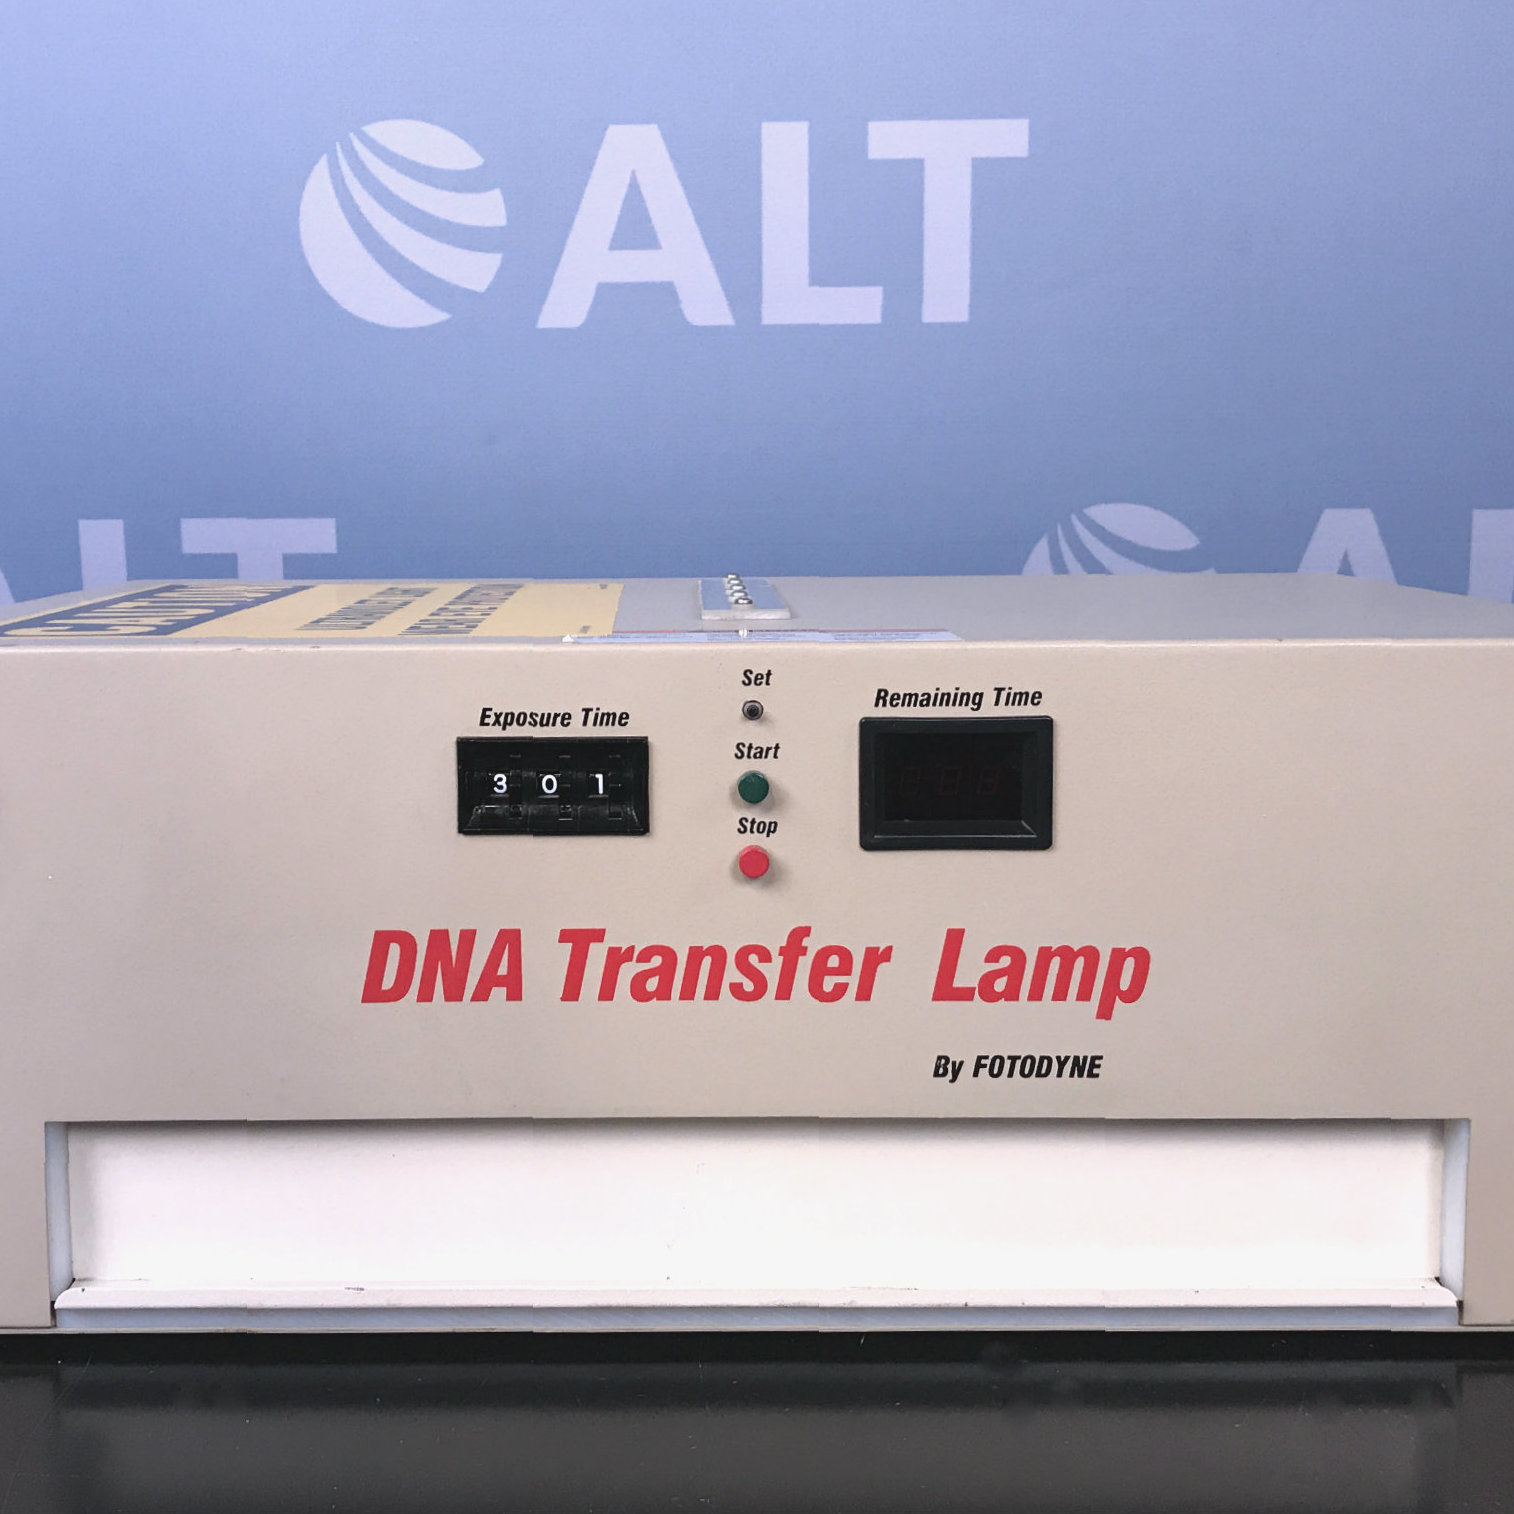 Fotodyne DNA Transfer Lamp Image